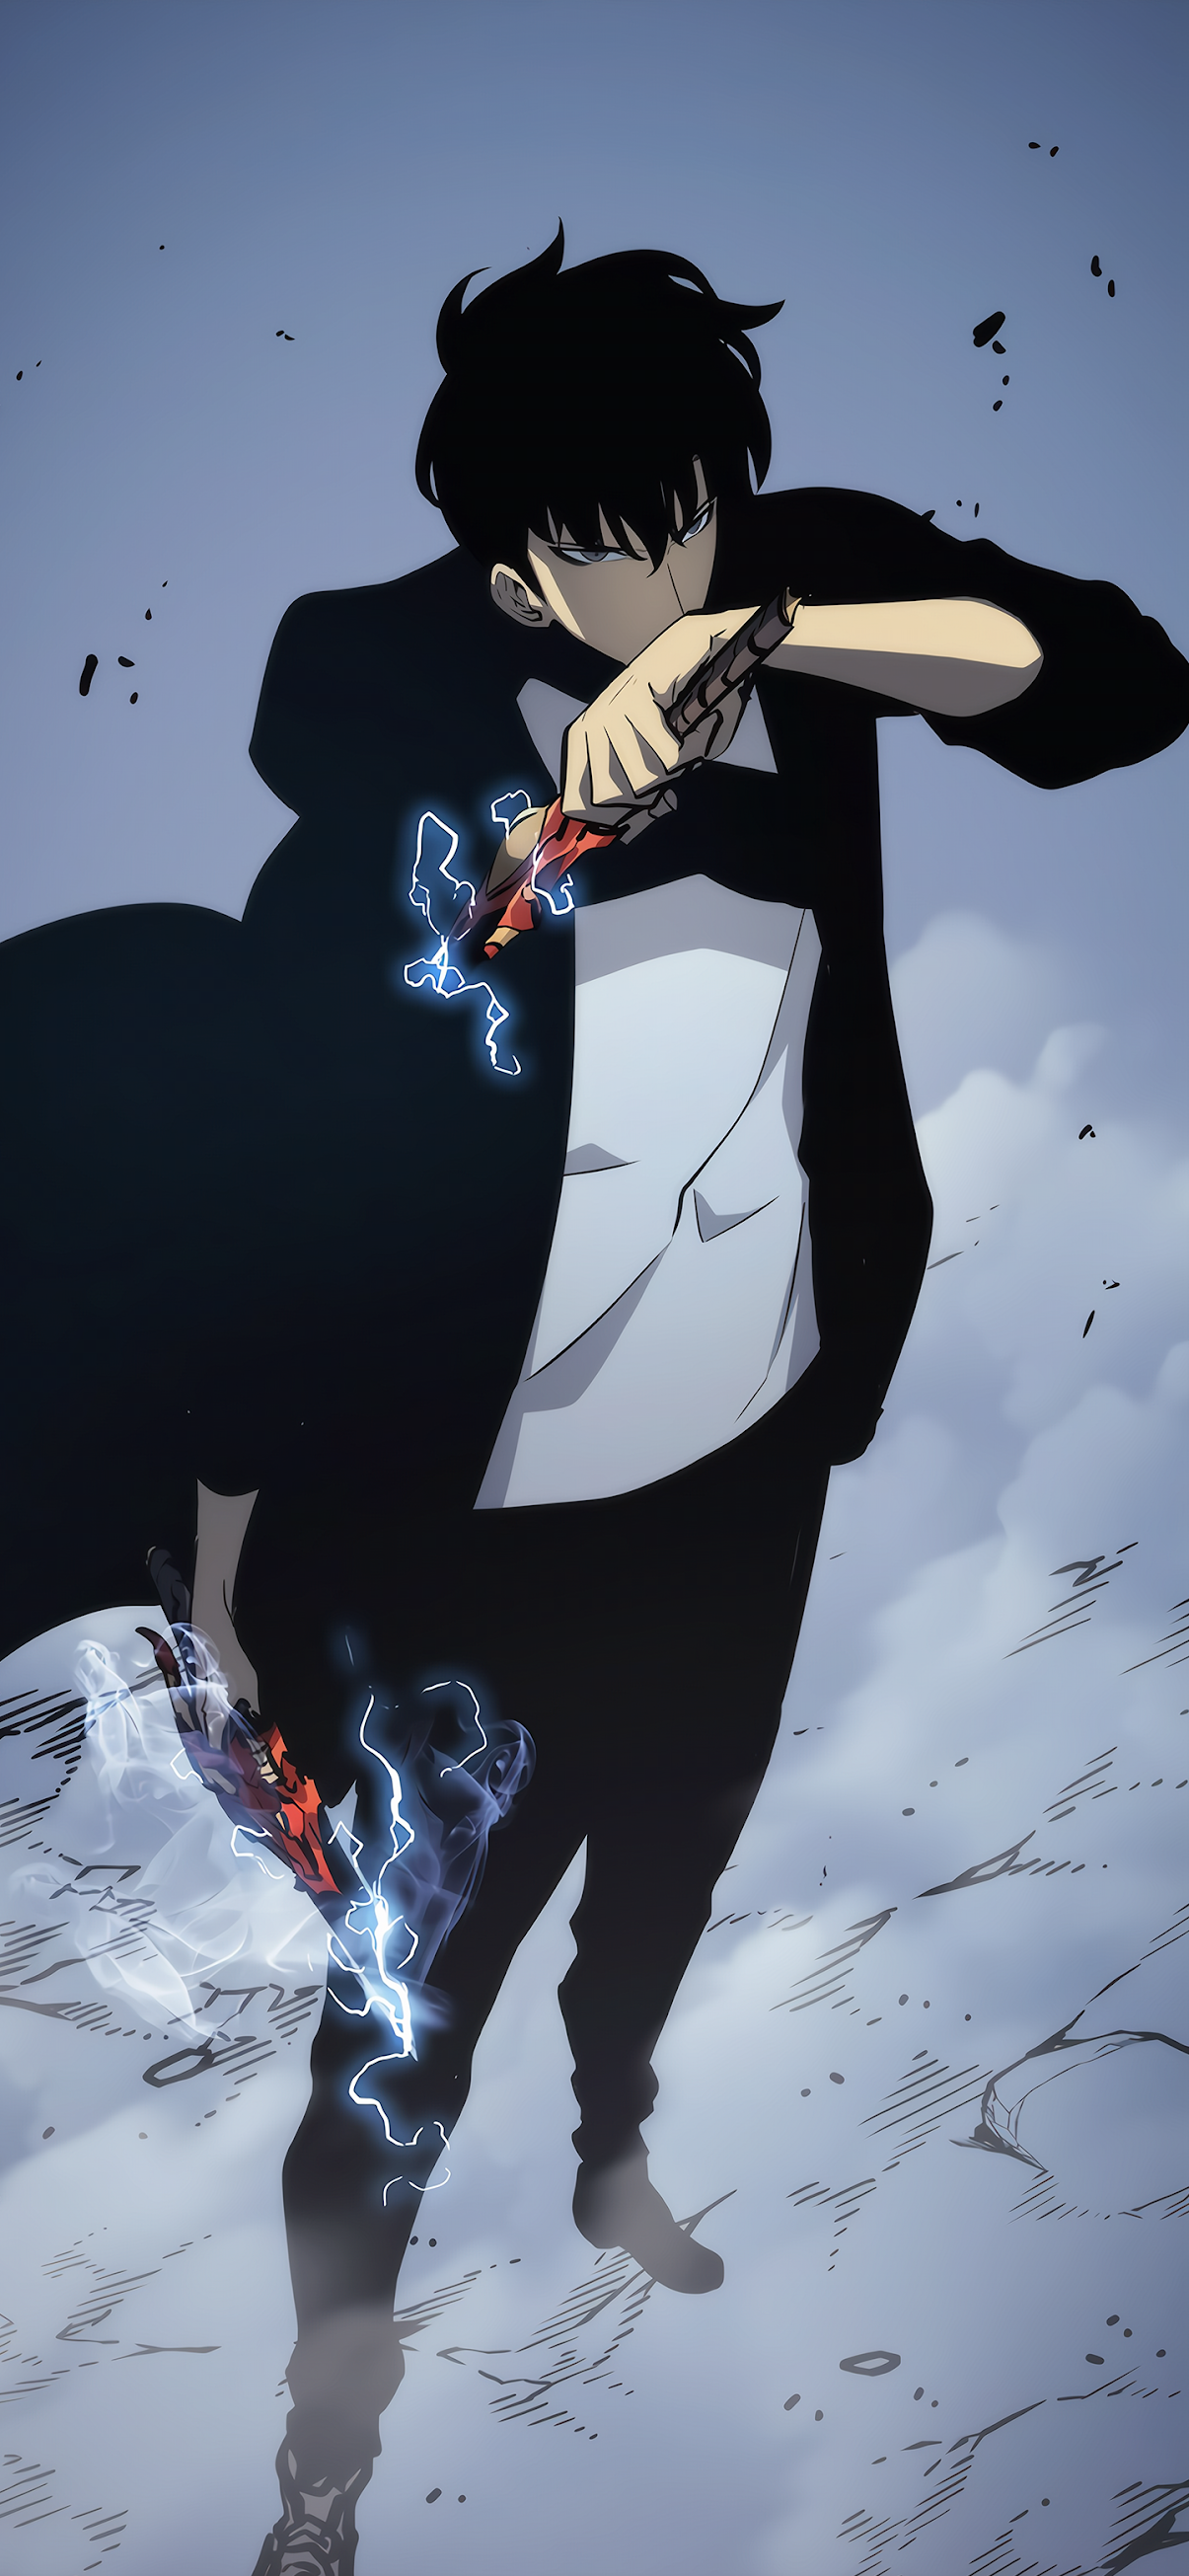 Solo Leveling Mobile Wallpaper Anime In 2020 Anime Character Drawing Anime Dark Anime